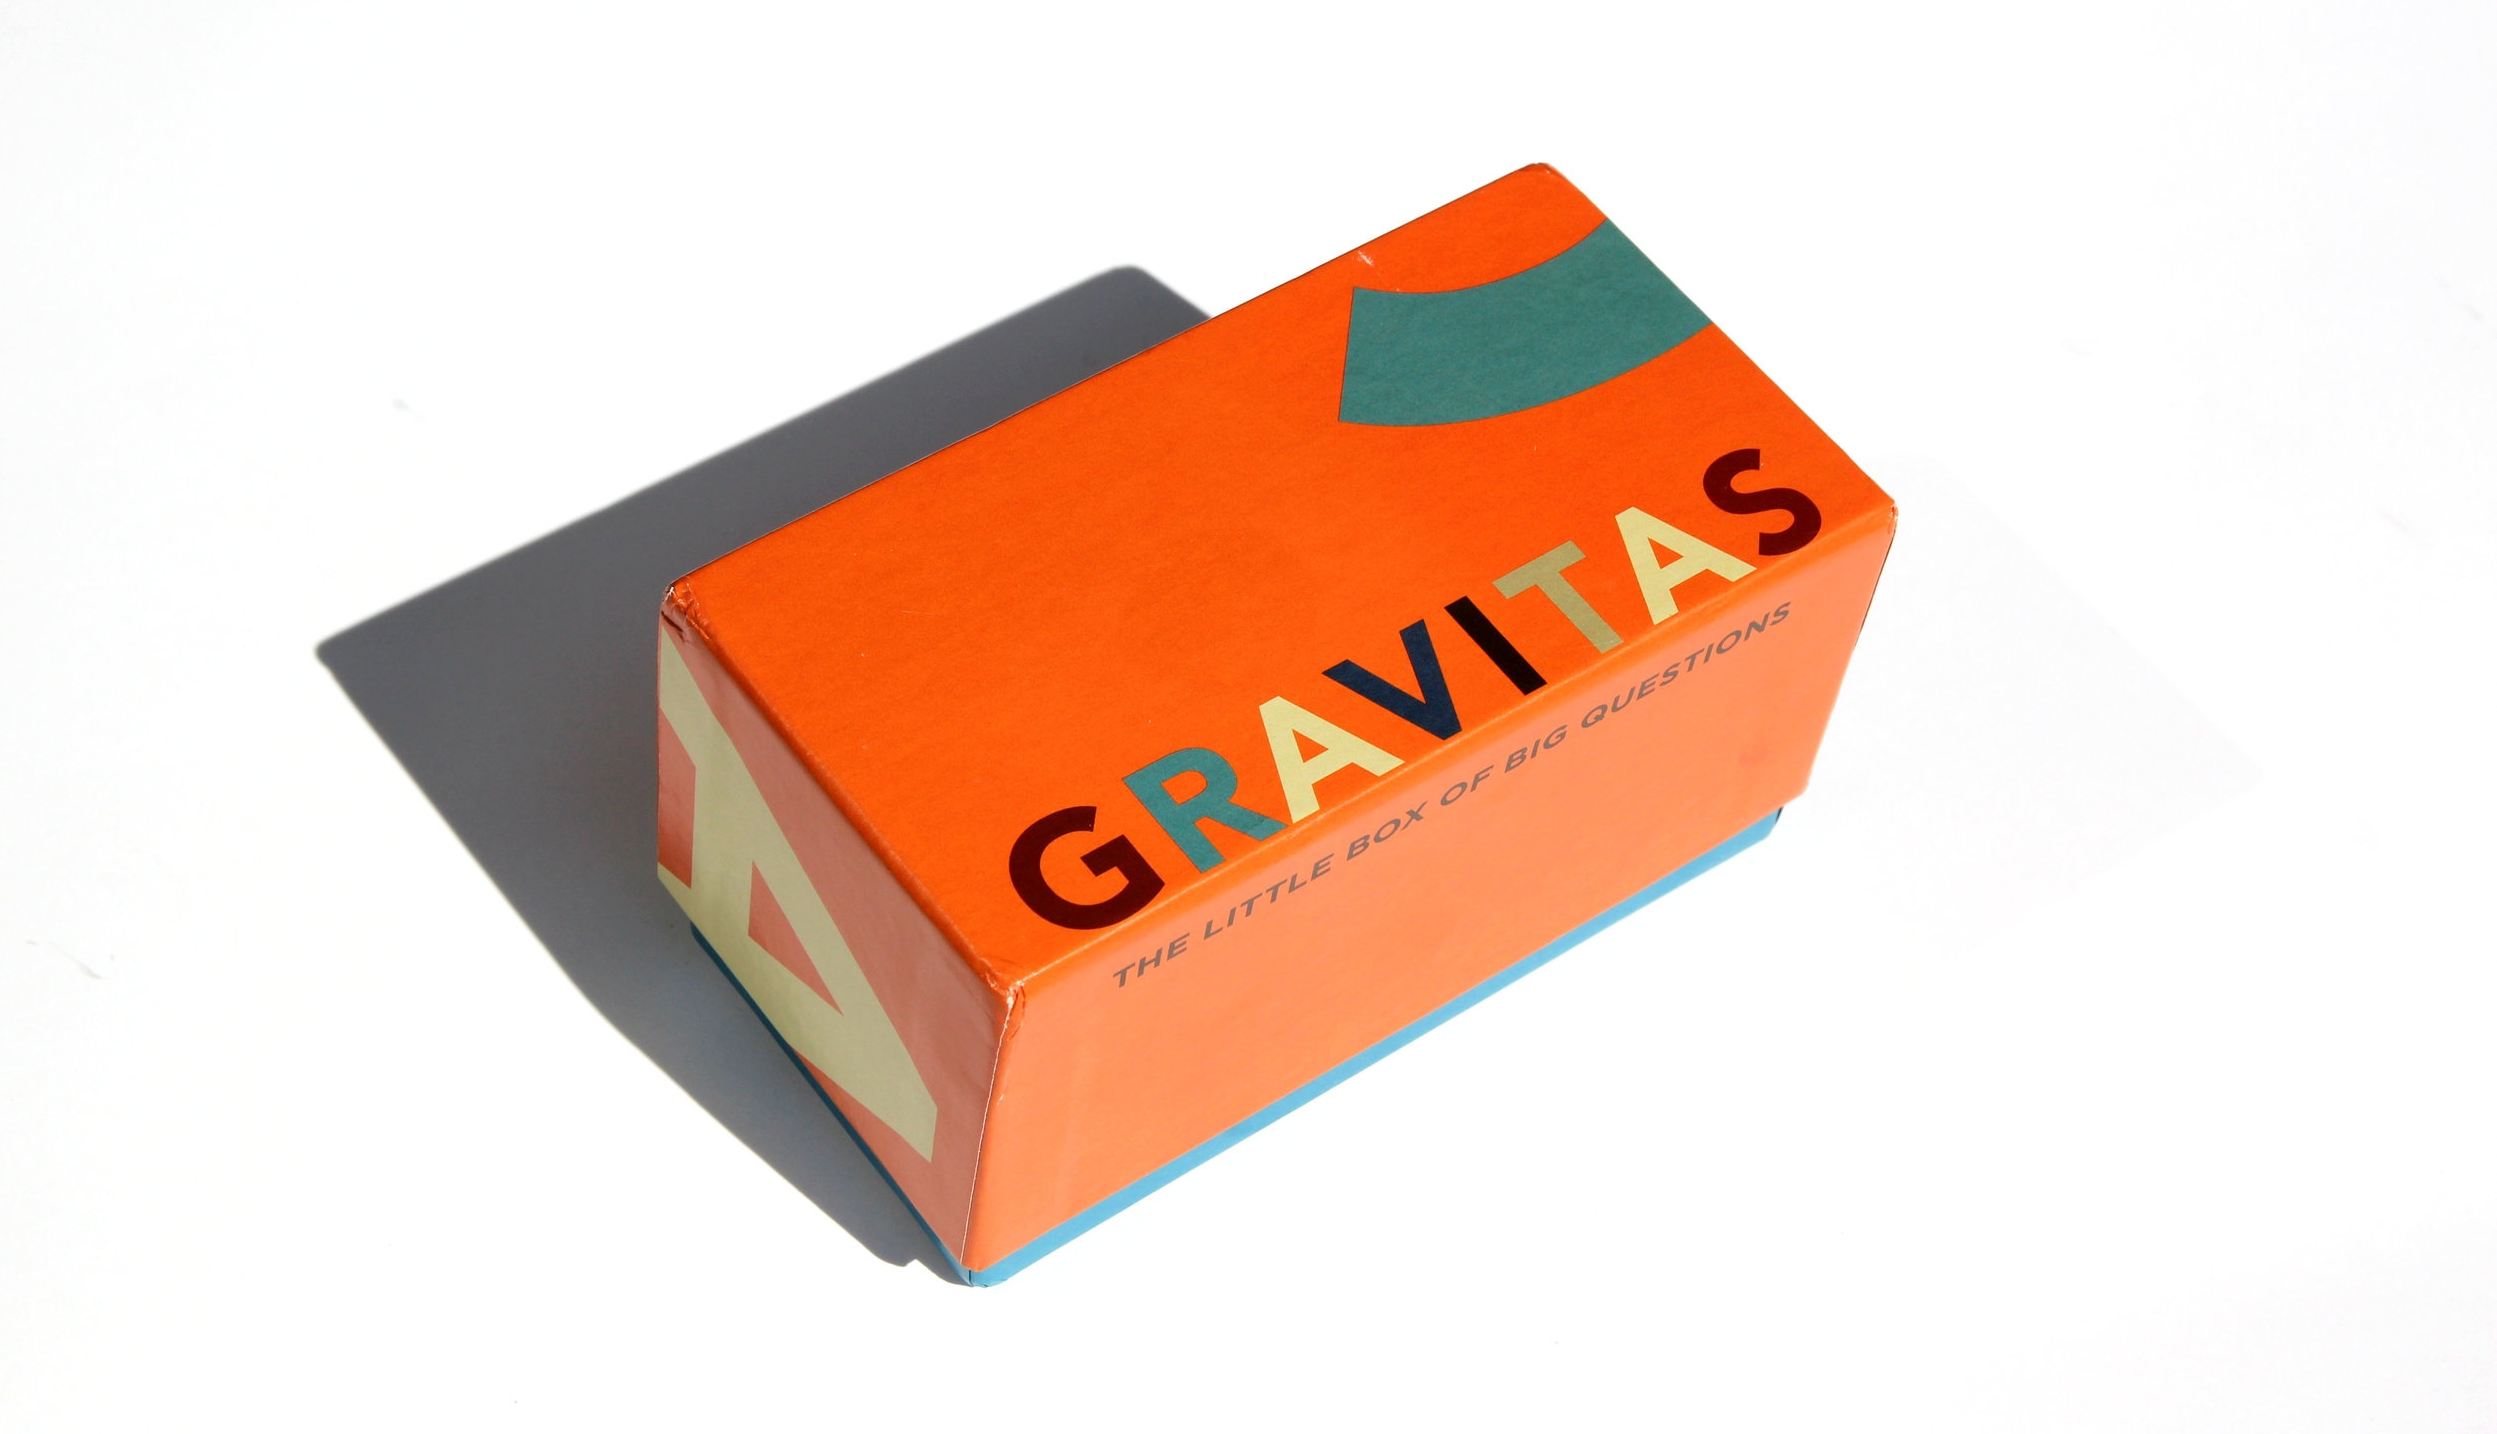 The Gravitas box of questions is a surprising resource for questions that are helpful to memoir and life story writing, perfect for those interested in preserving their family stories and personal history